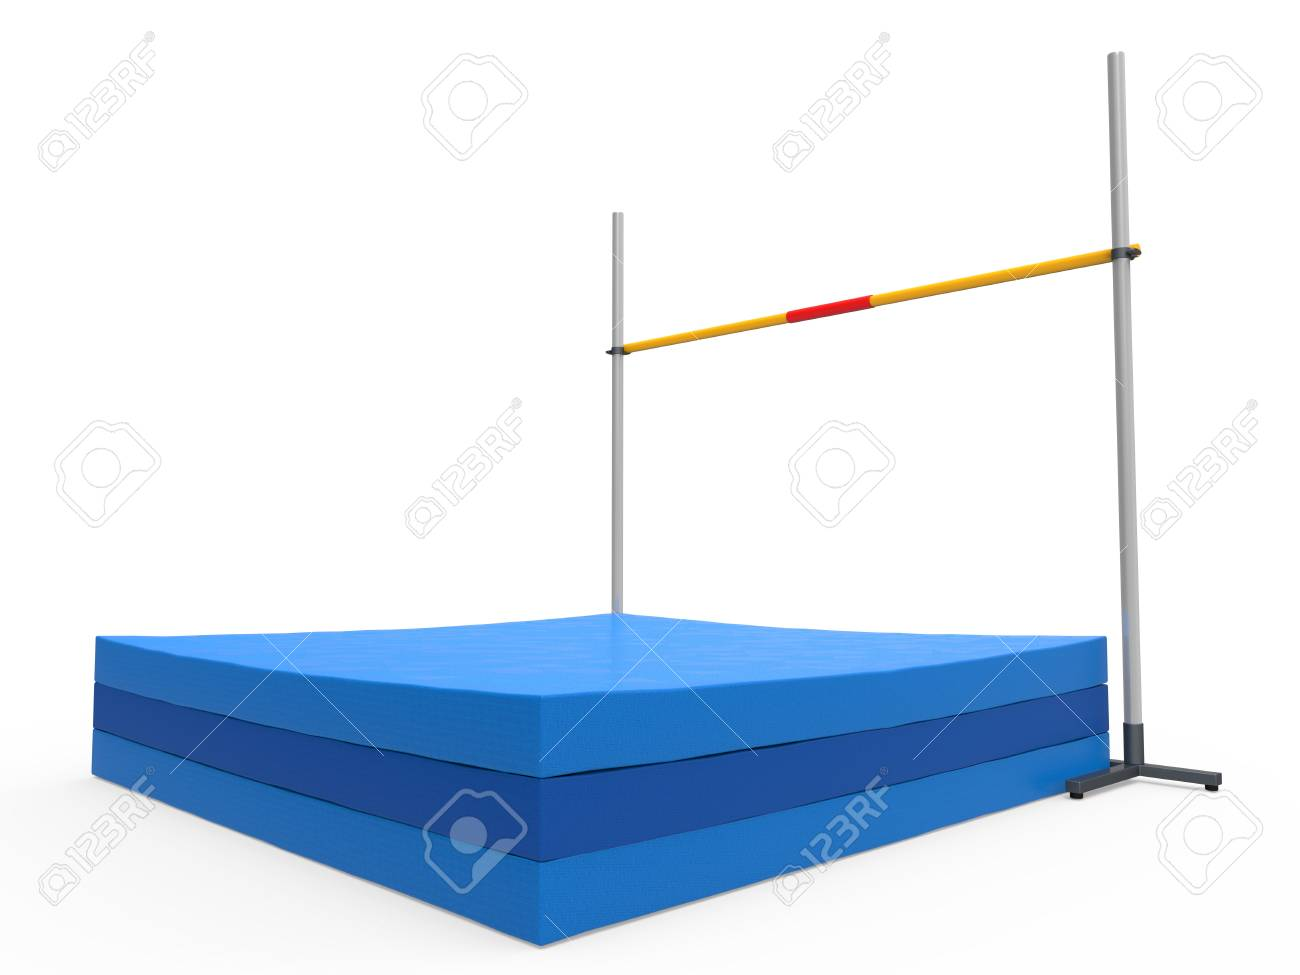 course simon mat jump mats jumping img spring high coaching youth and hunt board strength coach athletics